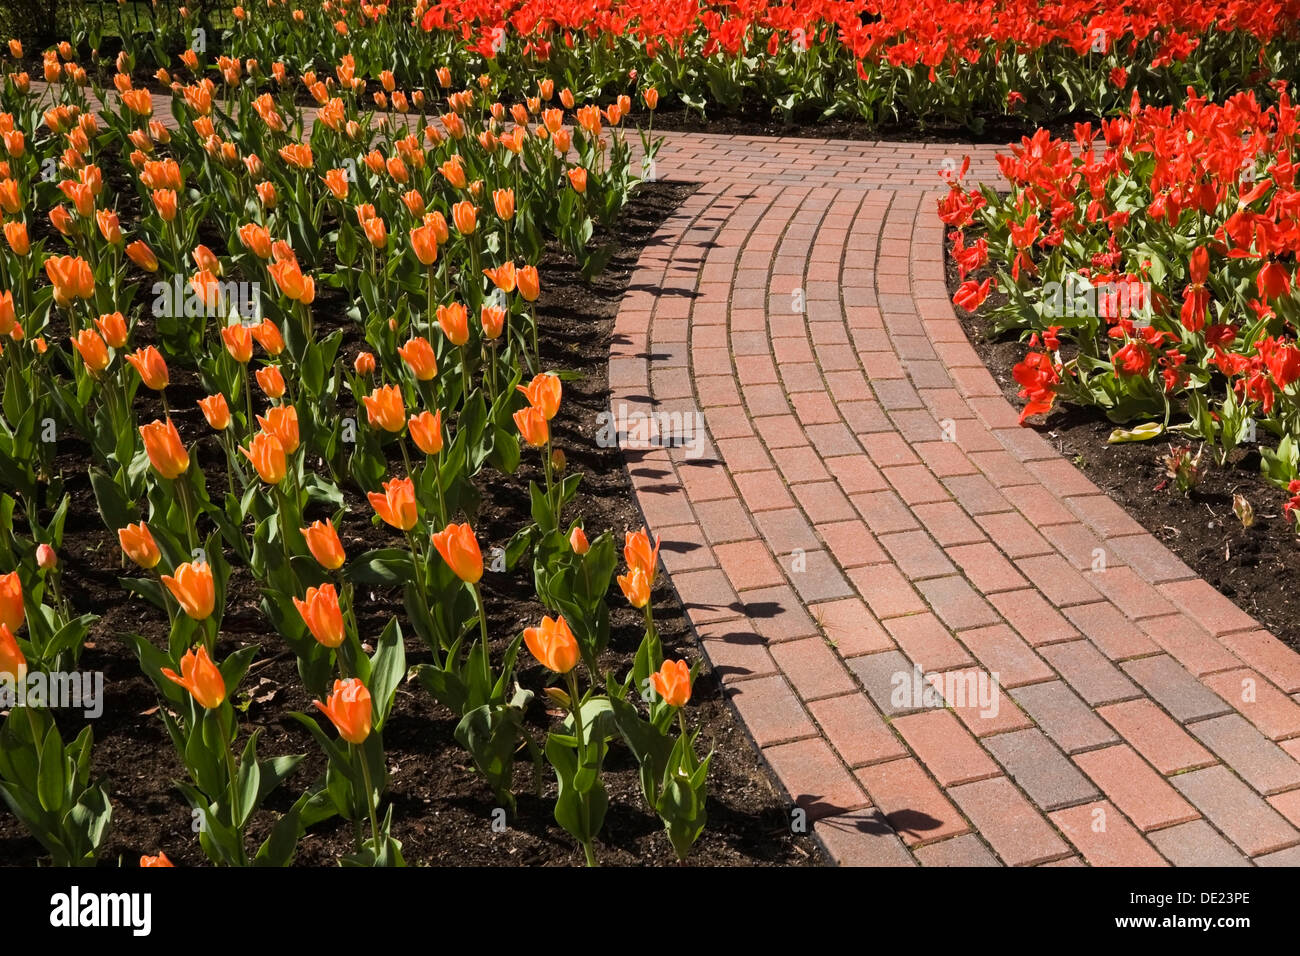 A curved brick garden path runs through the orange and red tulip ...